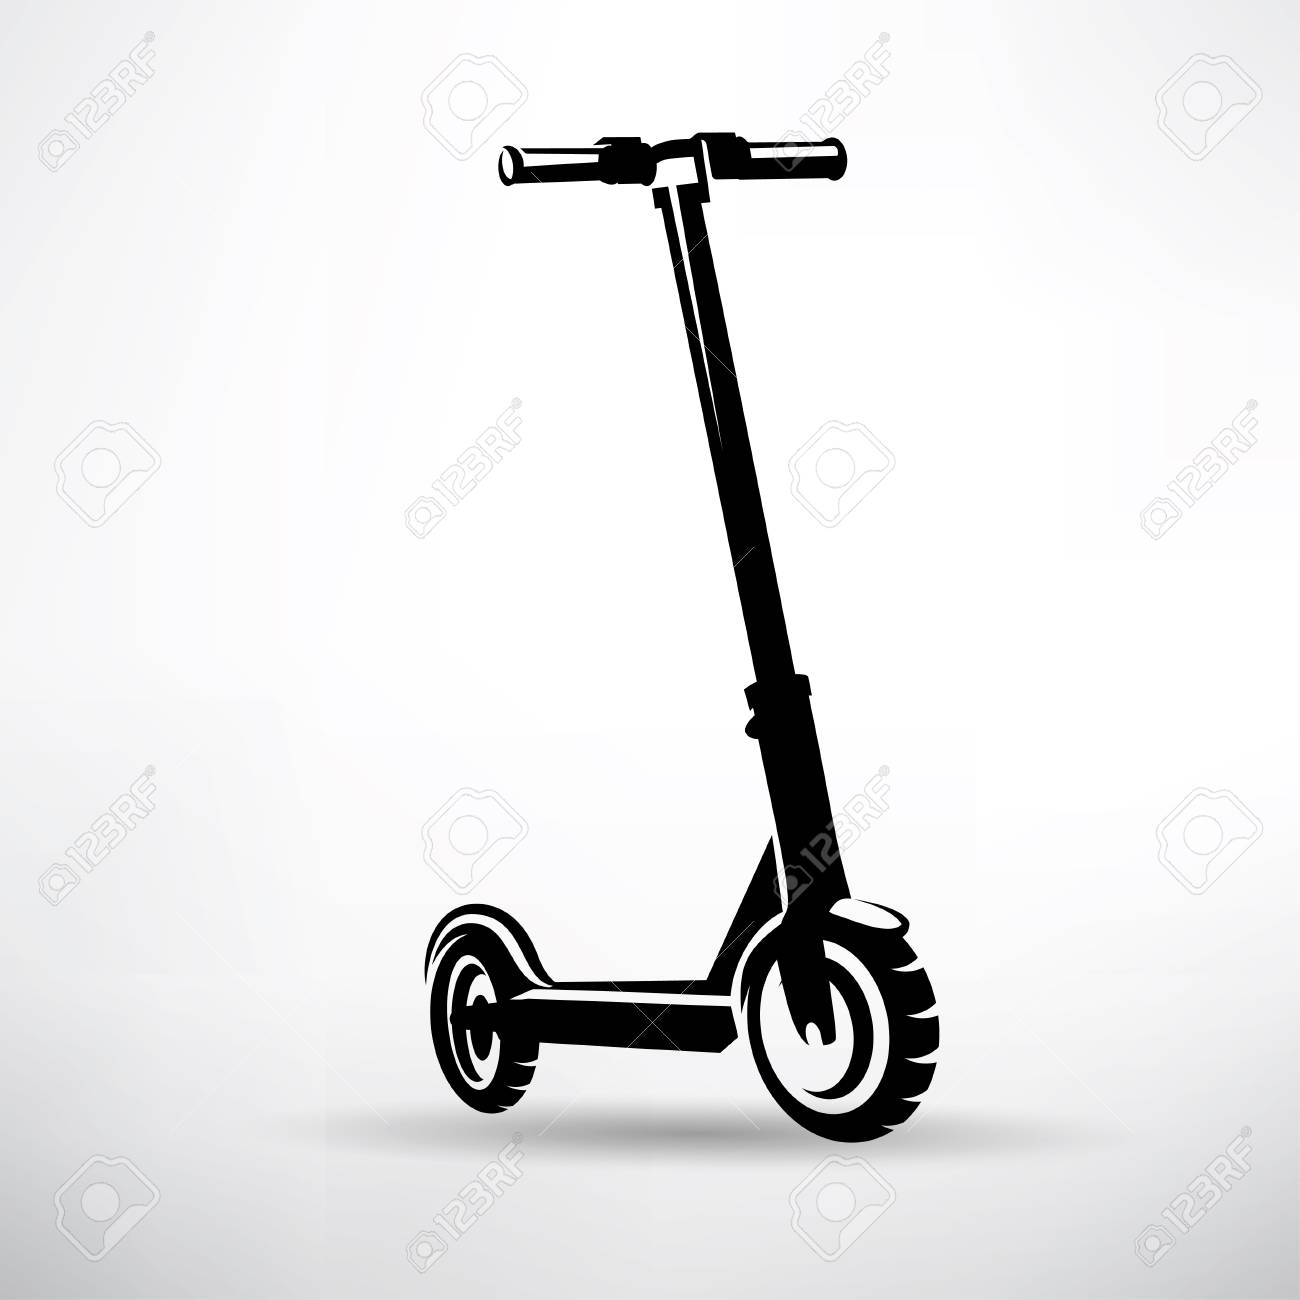 electric scooter vector symbol royalty free cliparts vectors and stock illustration image 102890688 123rf com